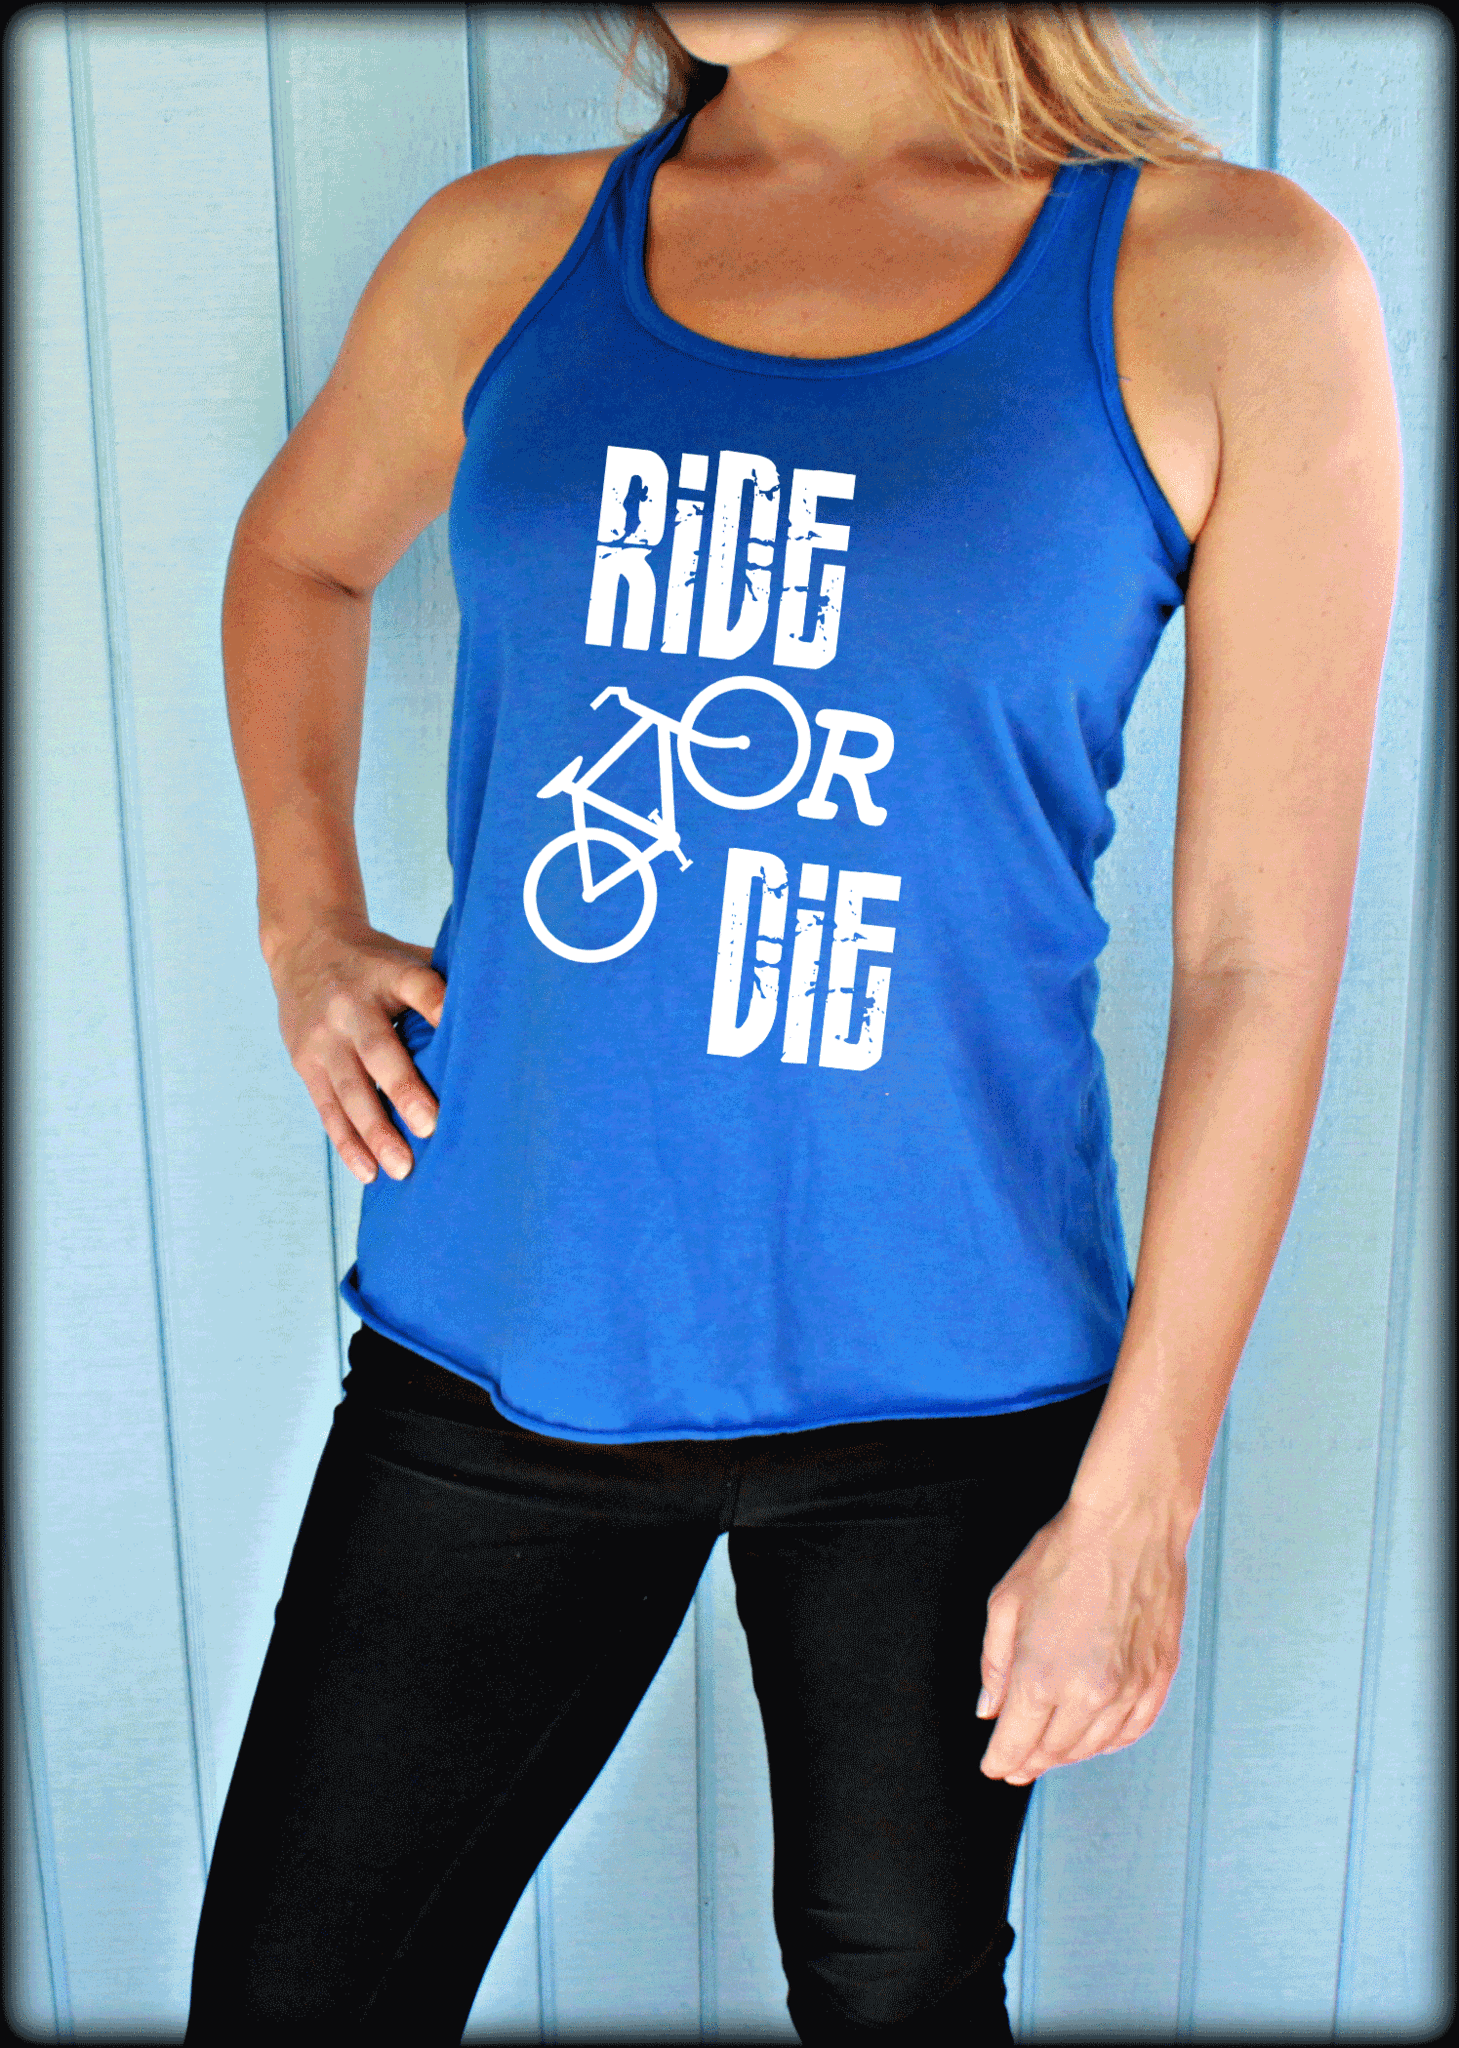 Ride or Die Flowy Bicycle Workout Tank Top. Fitness Motivation.